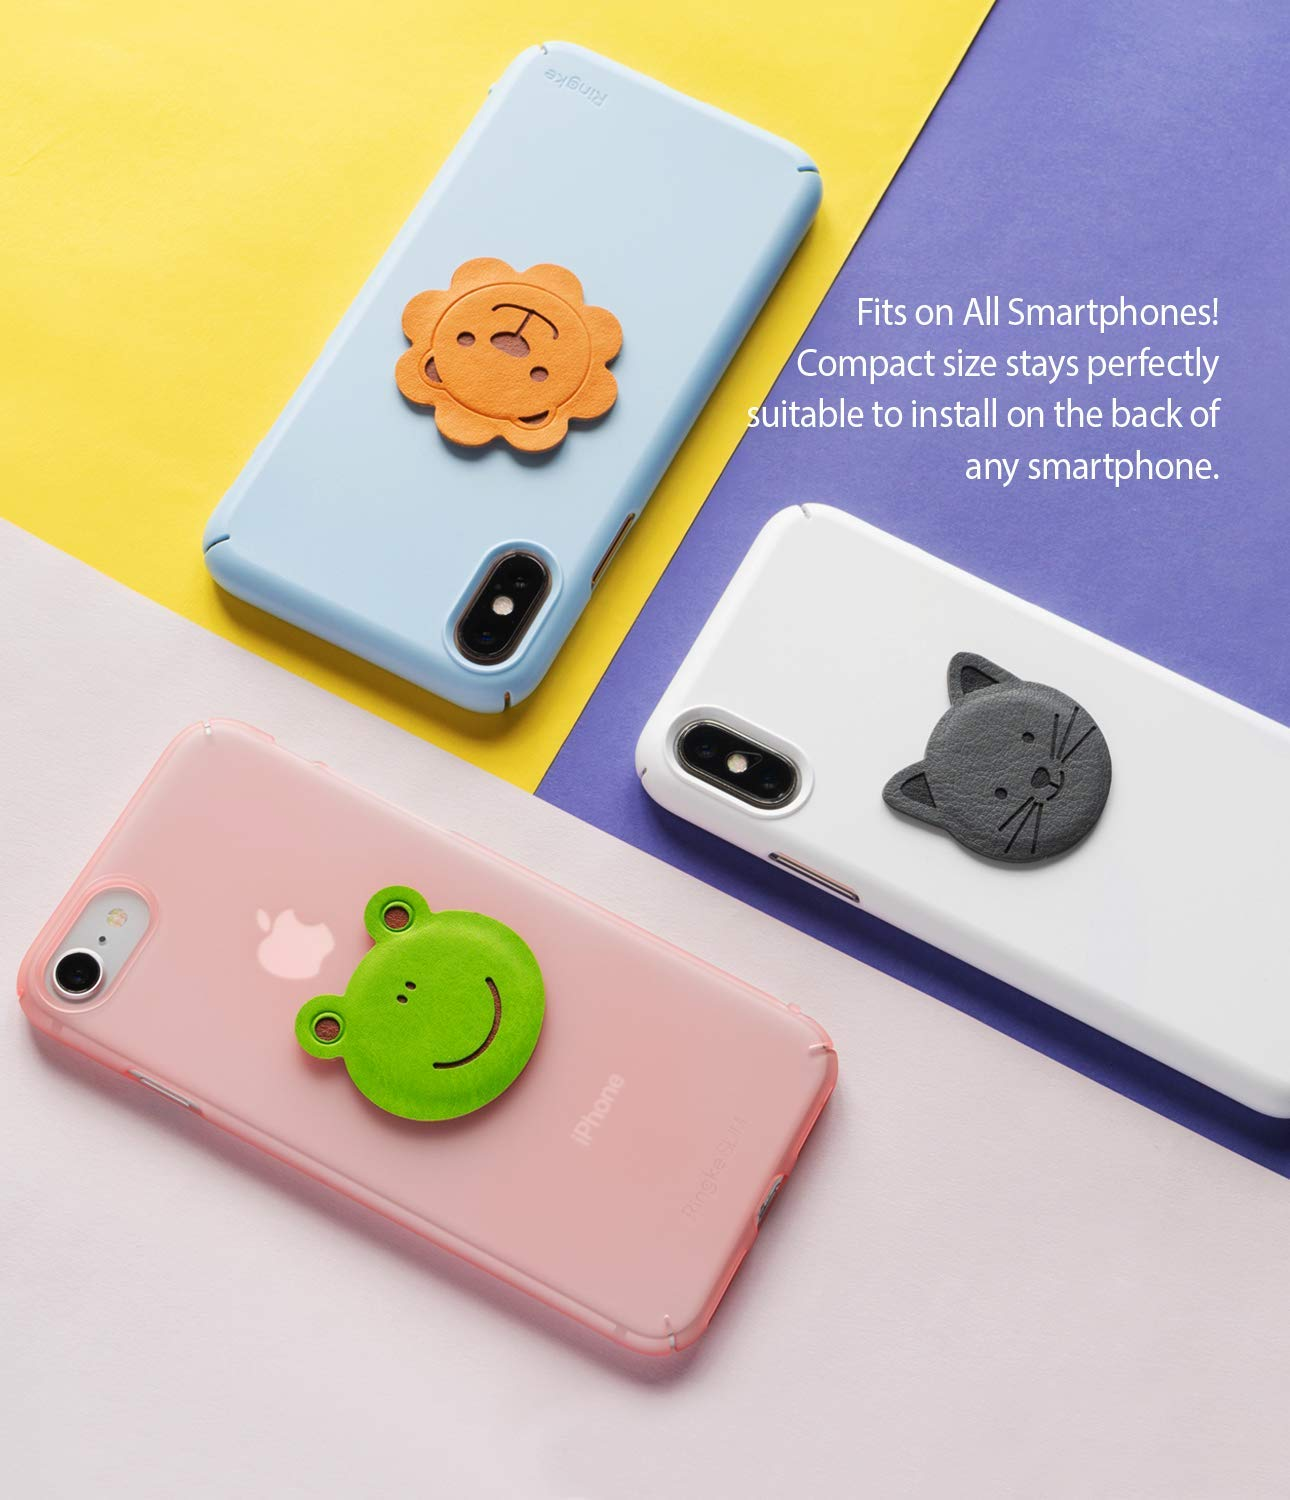 ringke magnetic character metal plate kit animal edition fits on all smartphones